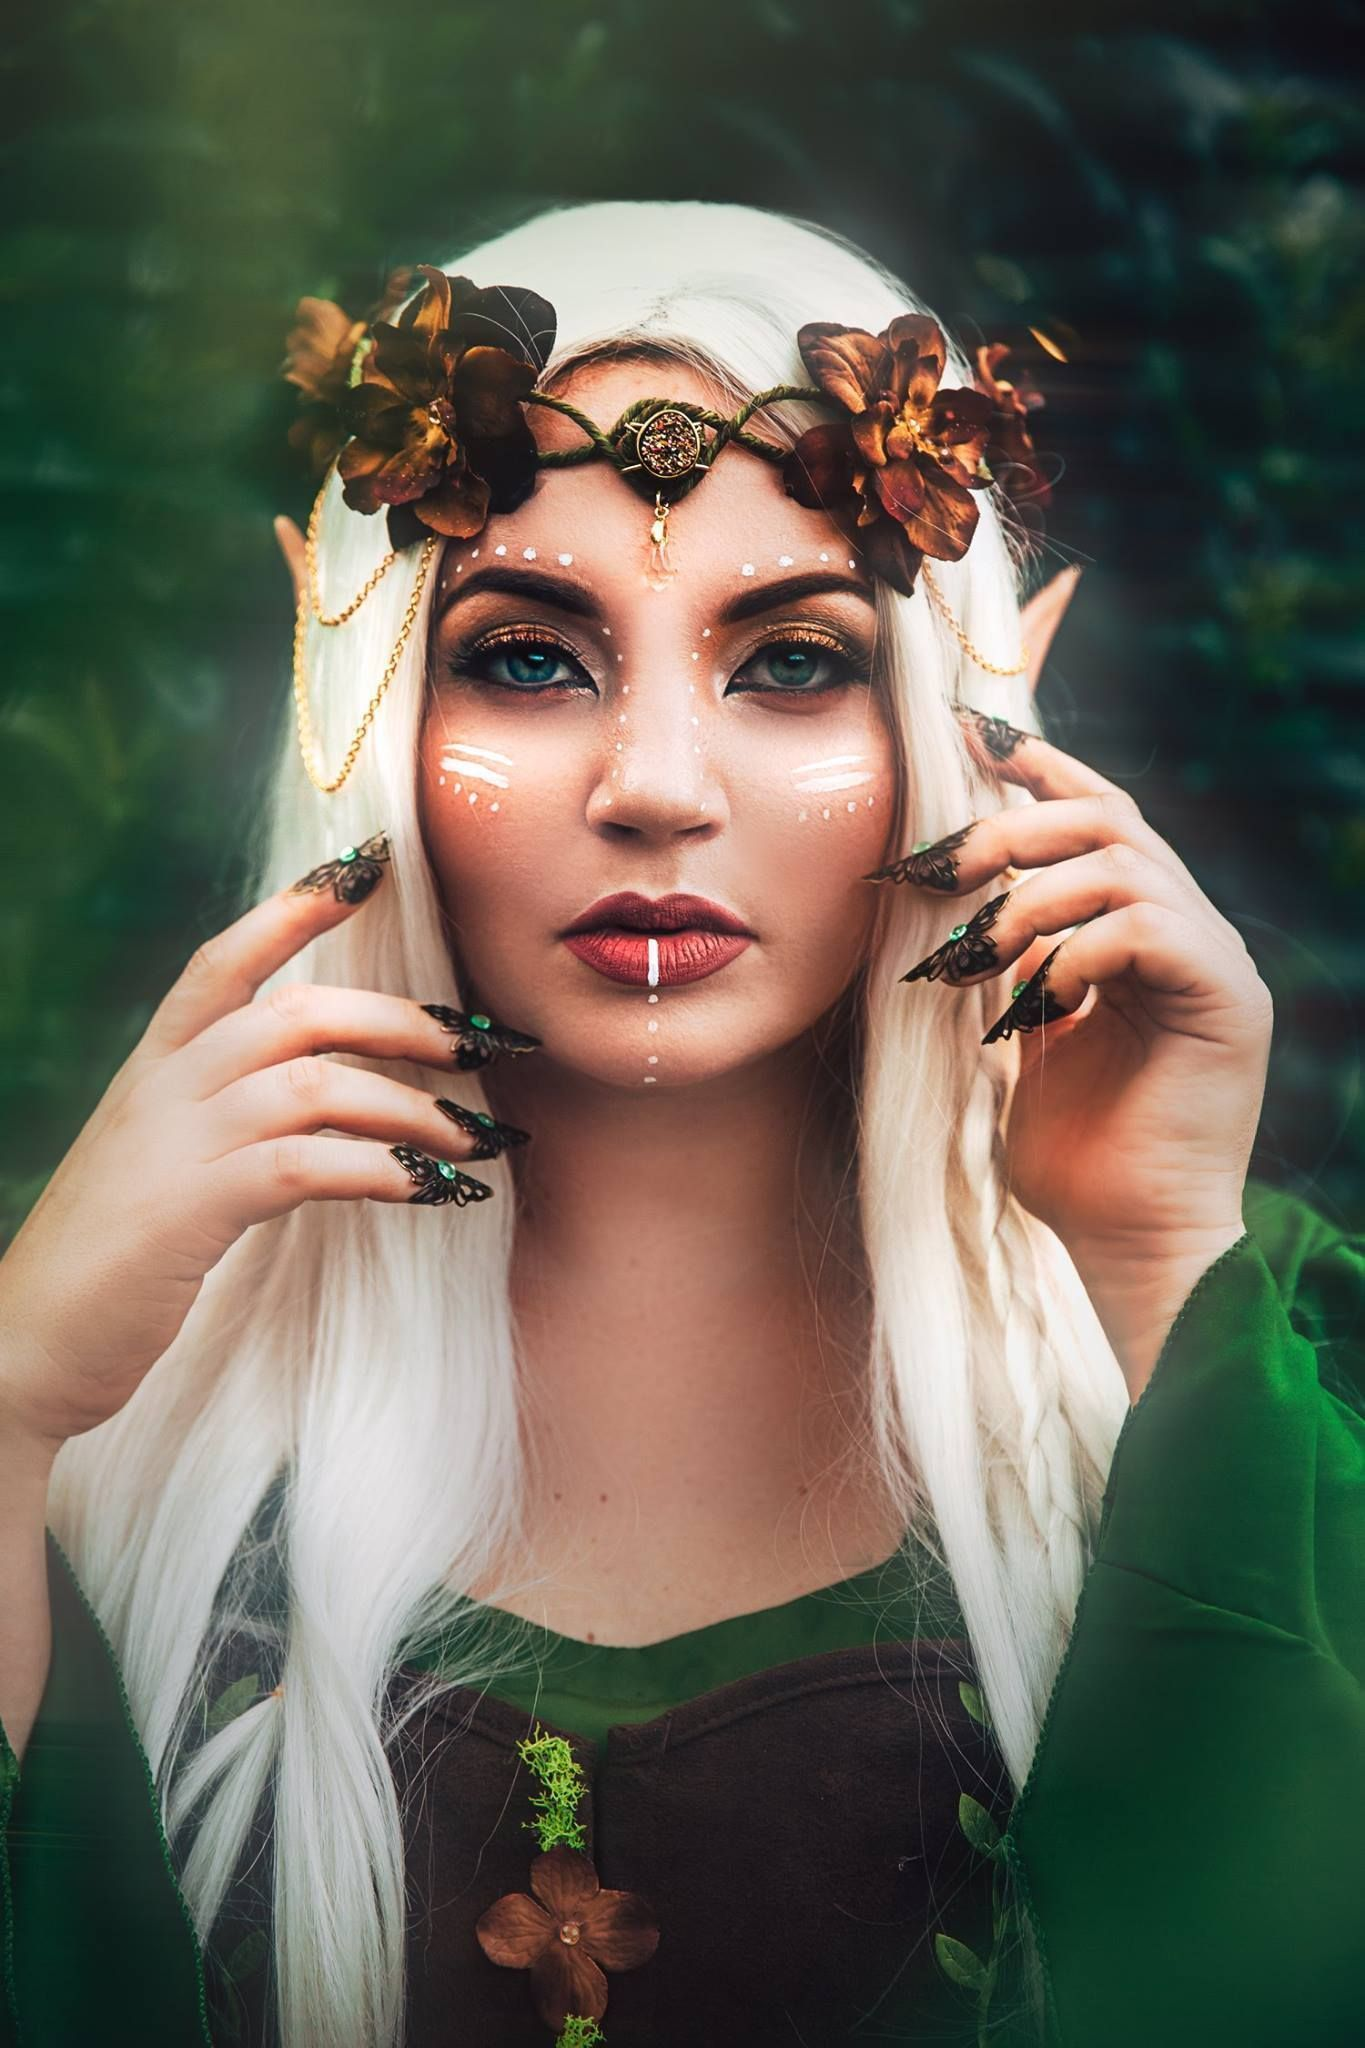 Related Image Face Body Paint Halloween Make Halloween Makeup - Related Image Face Body Paint Halloween Make Halloween Makeup Informationen zu Related Image Face Bo - #Body #ElfMakeup #Eyebrows #Face #Halloween #image #Lashes #LauraGeller #Makeup #Paint #Related